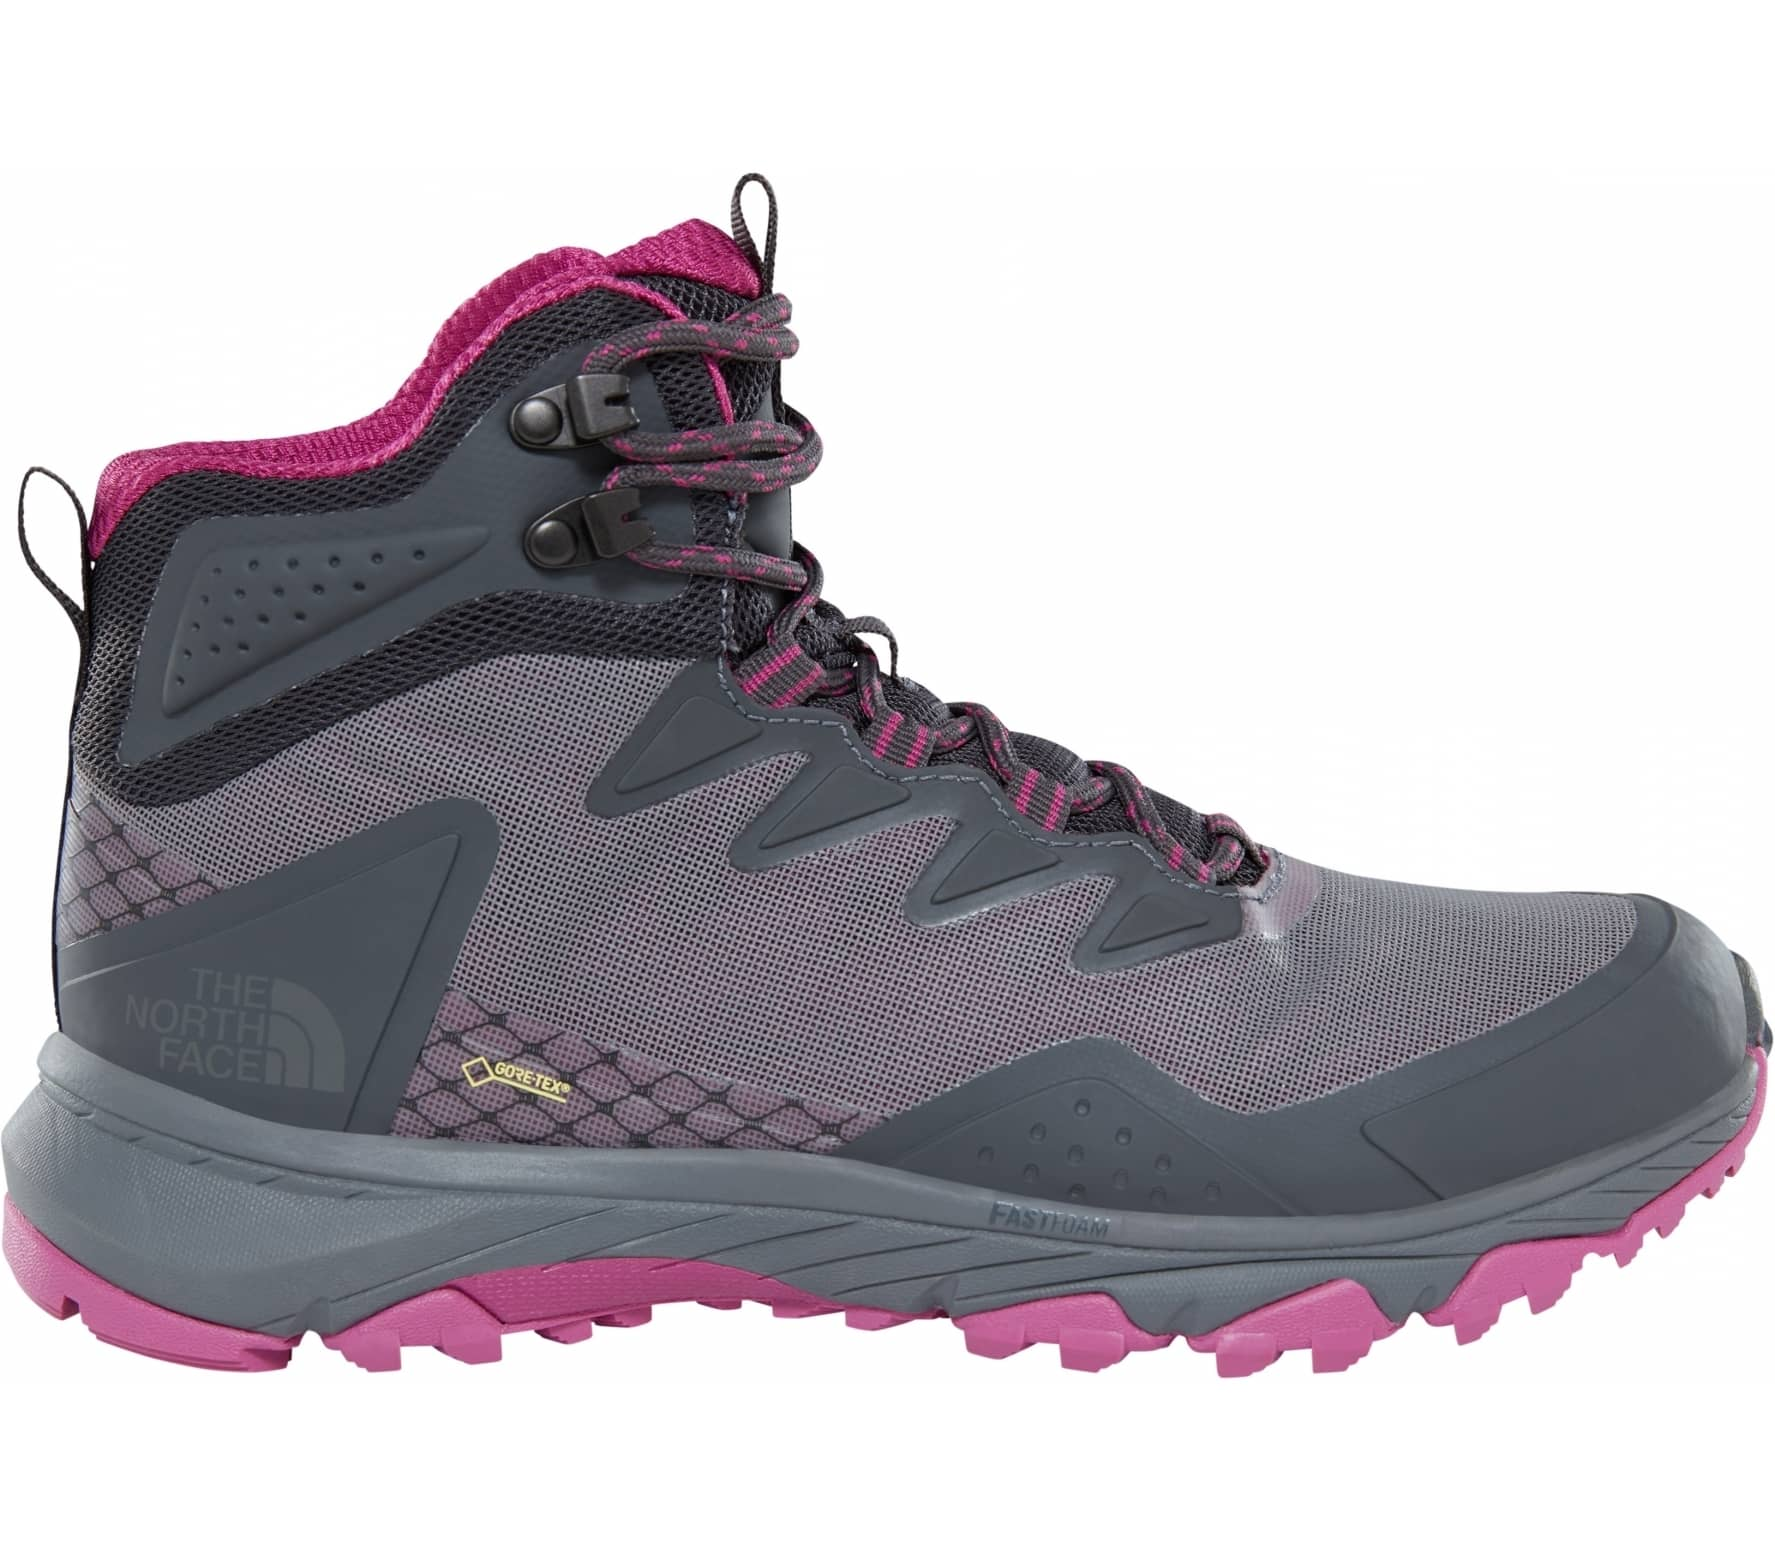 Face Ultra Hiking North Mid Gtx The Shoes Iii Fastpack Women's 5RLq3Aj4